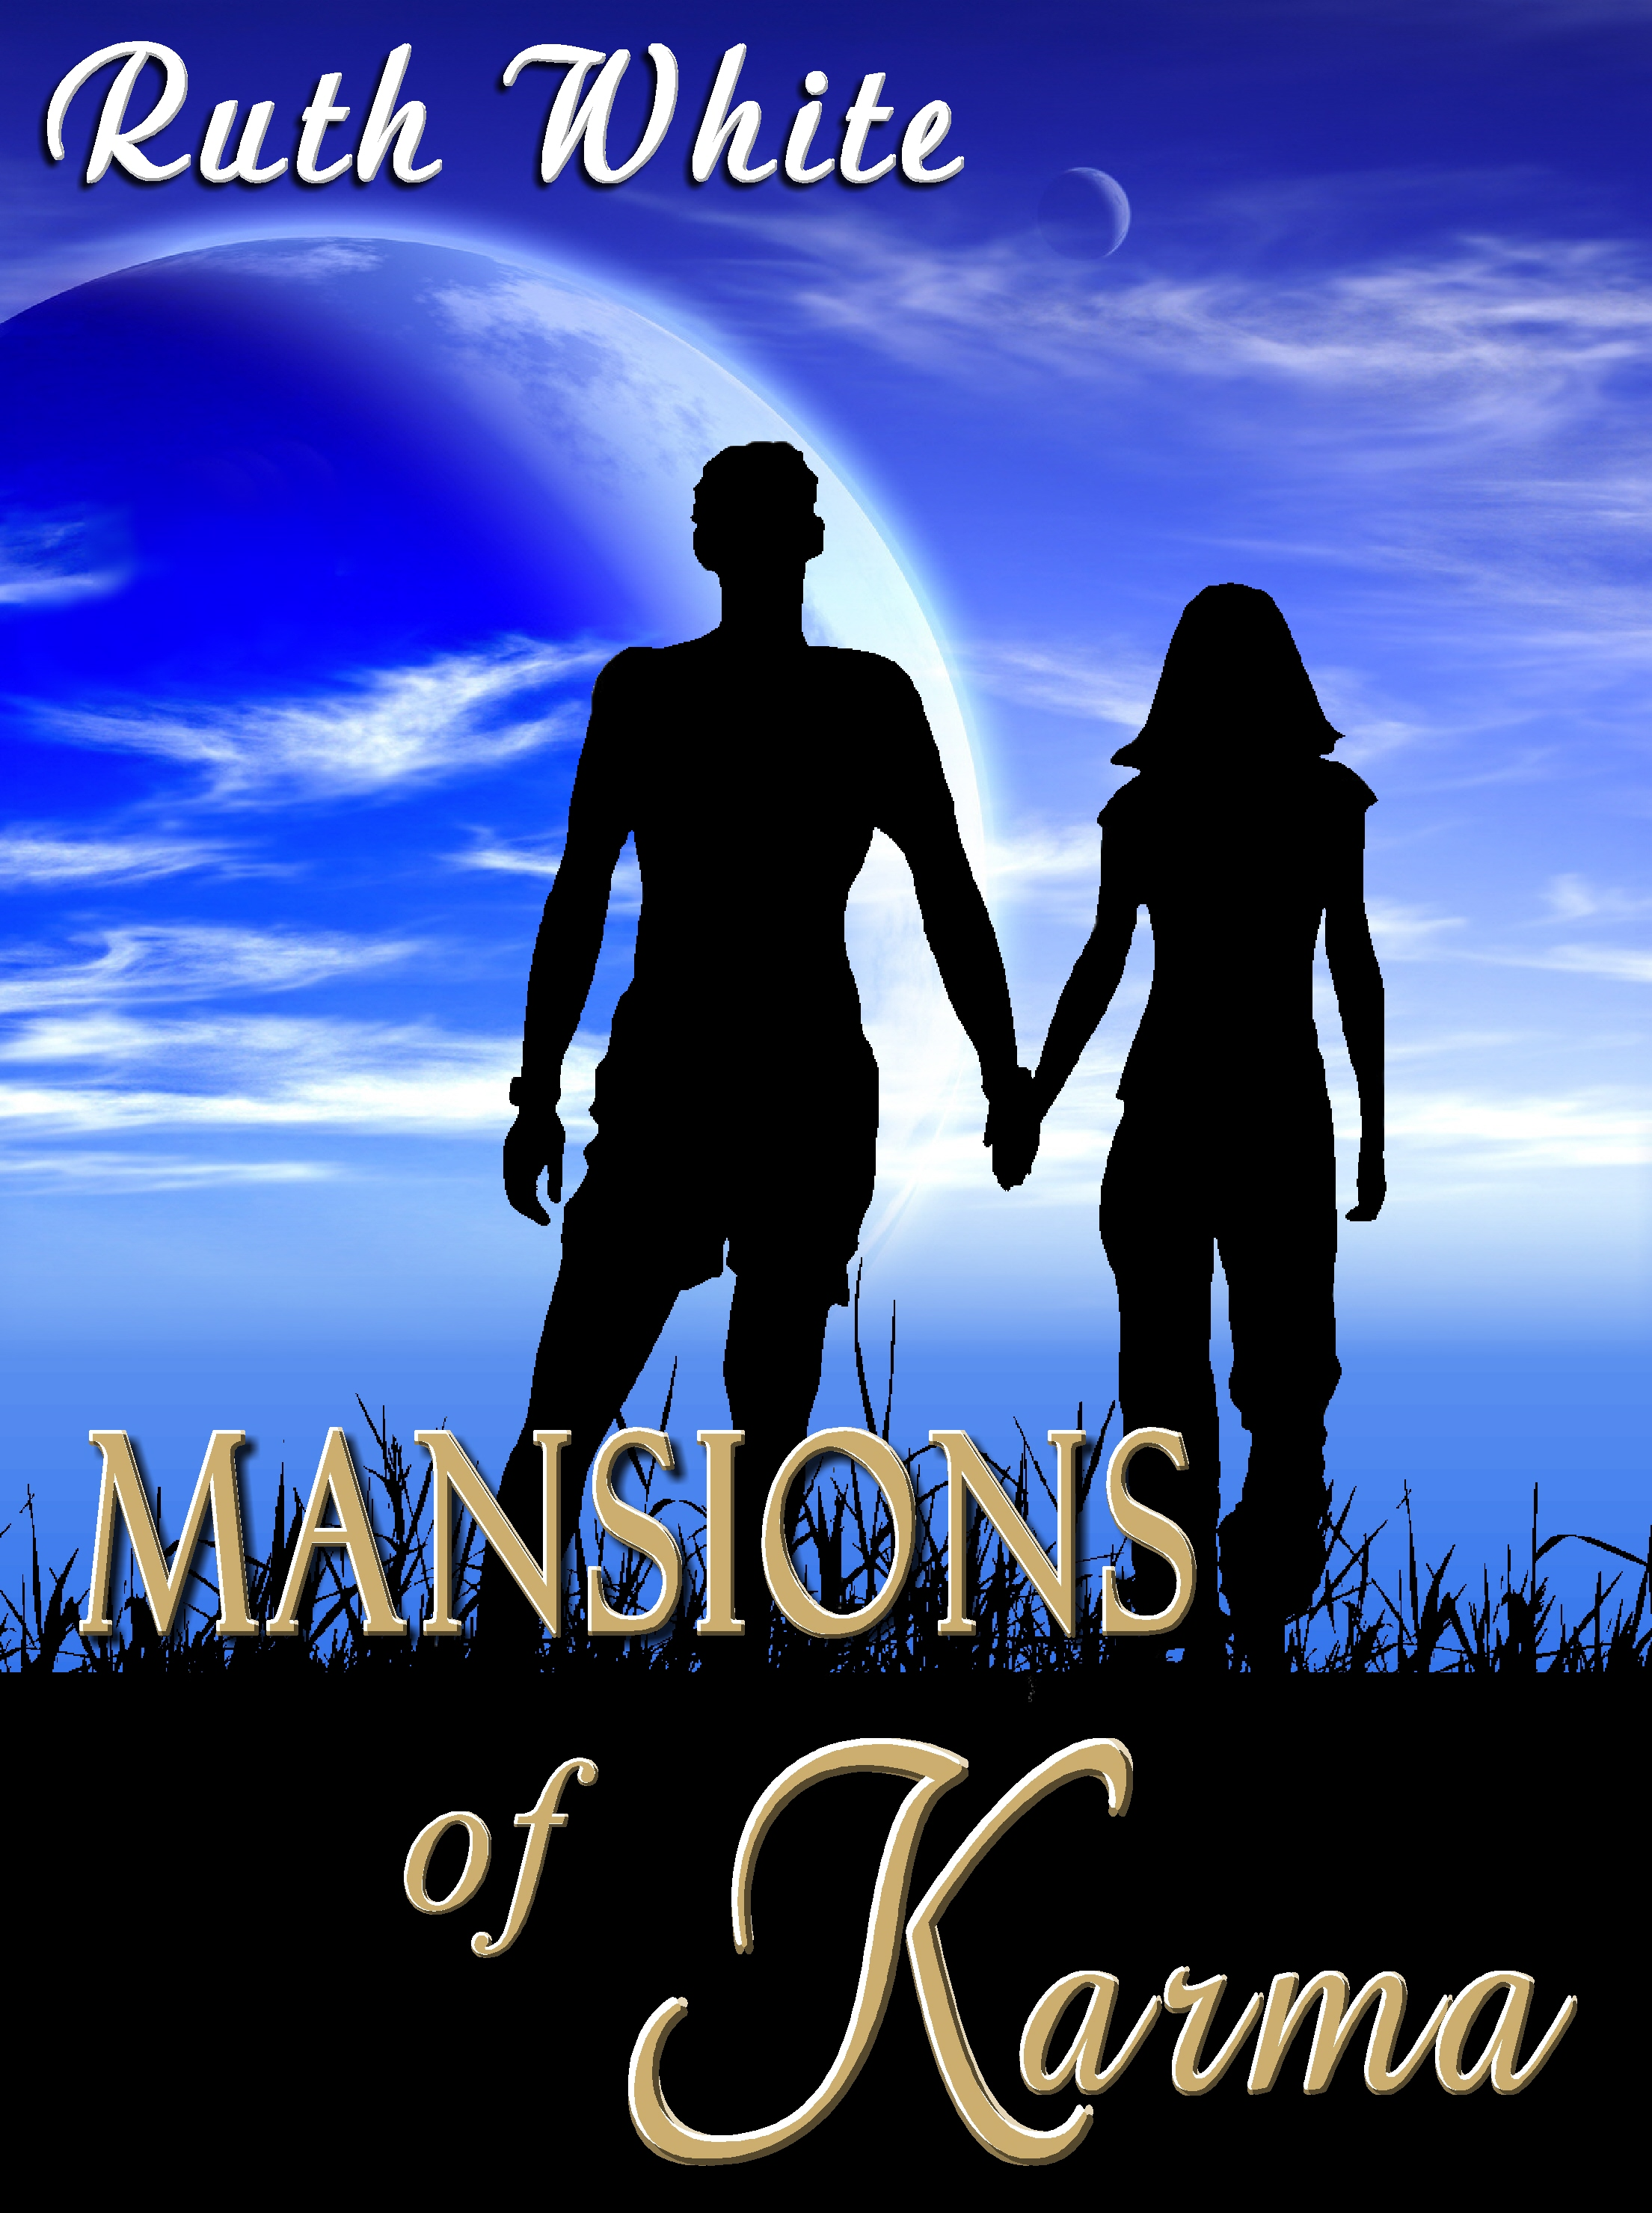 Ruth_White_Mansions_of_Karma